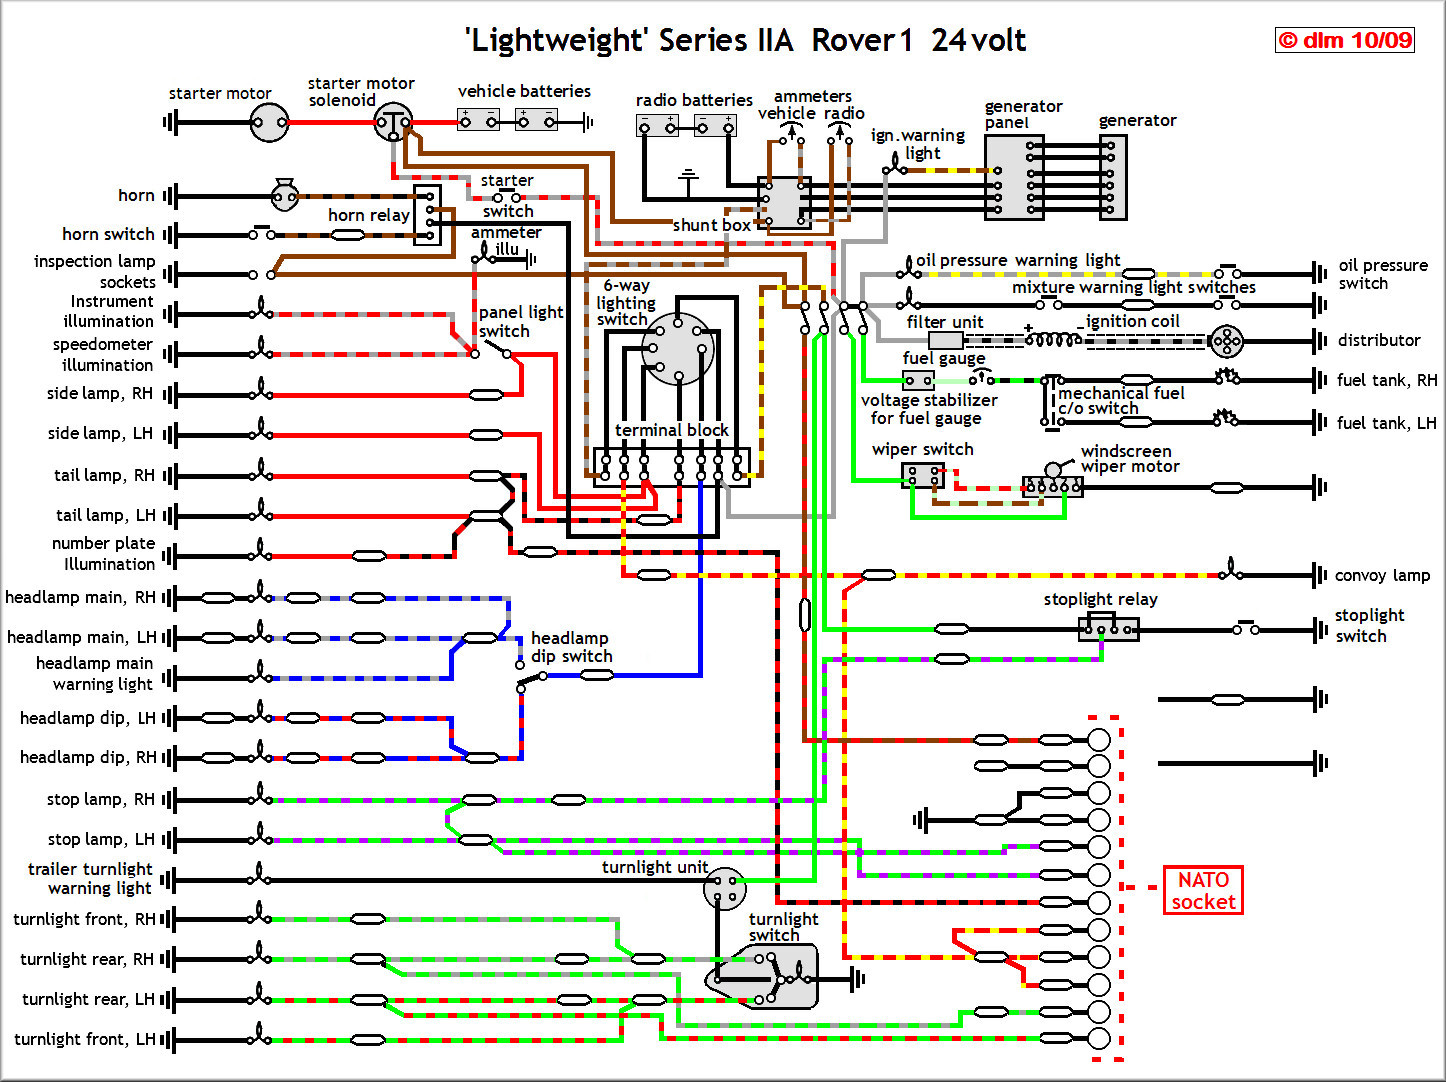 Wiring Diagram For Land Rover Lr3 Books Of Moto 4 80cc Series 3 Military List Schematic Rh Olivetreedesigns Co